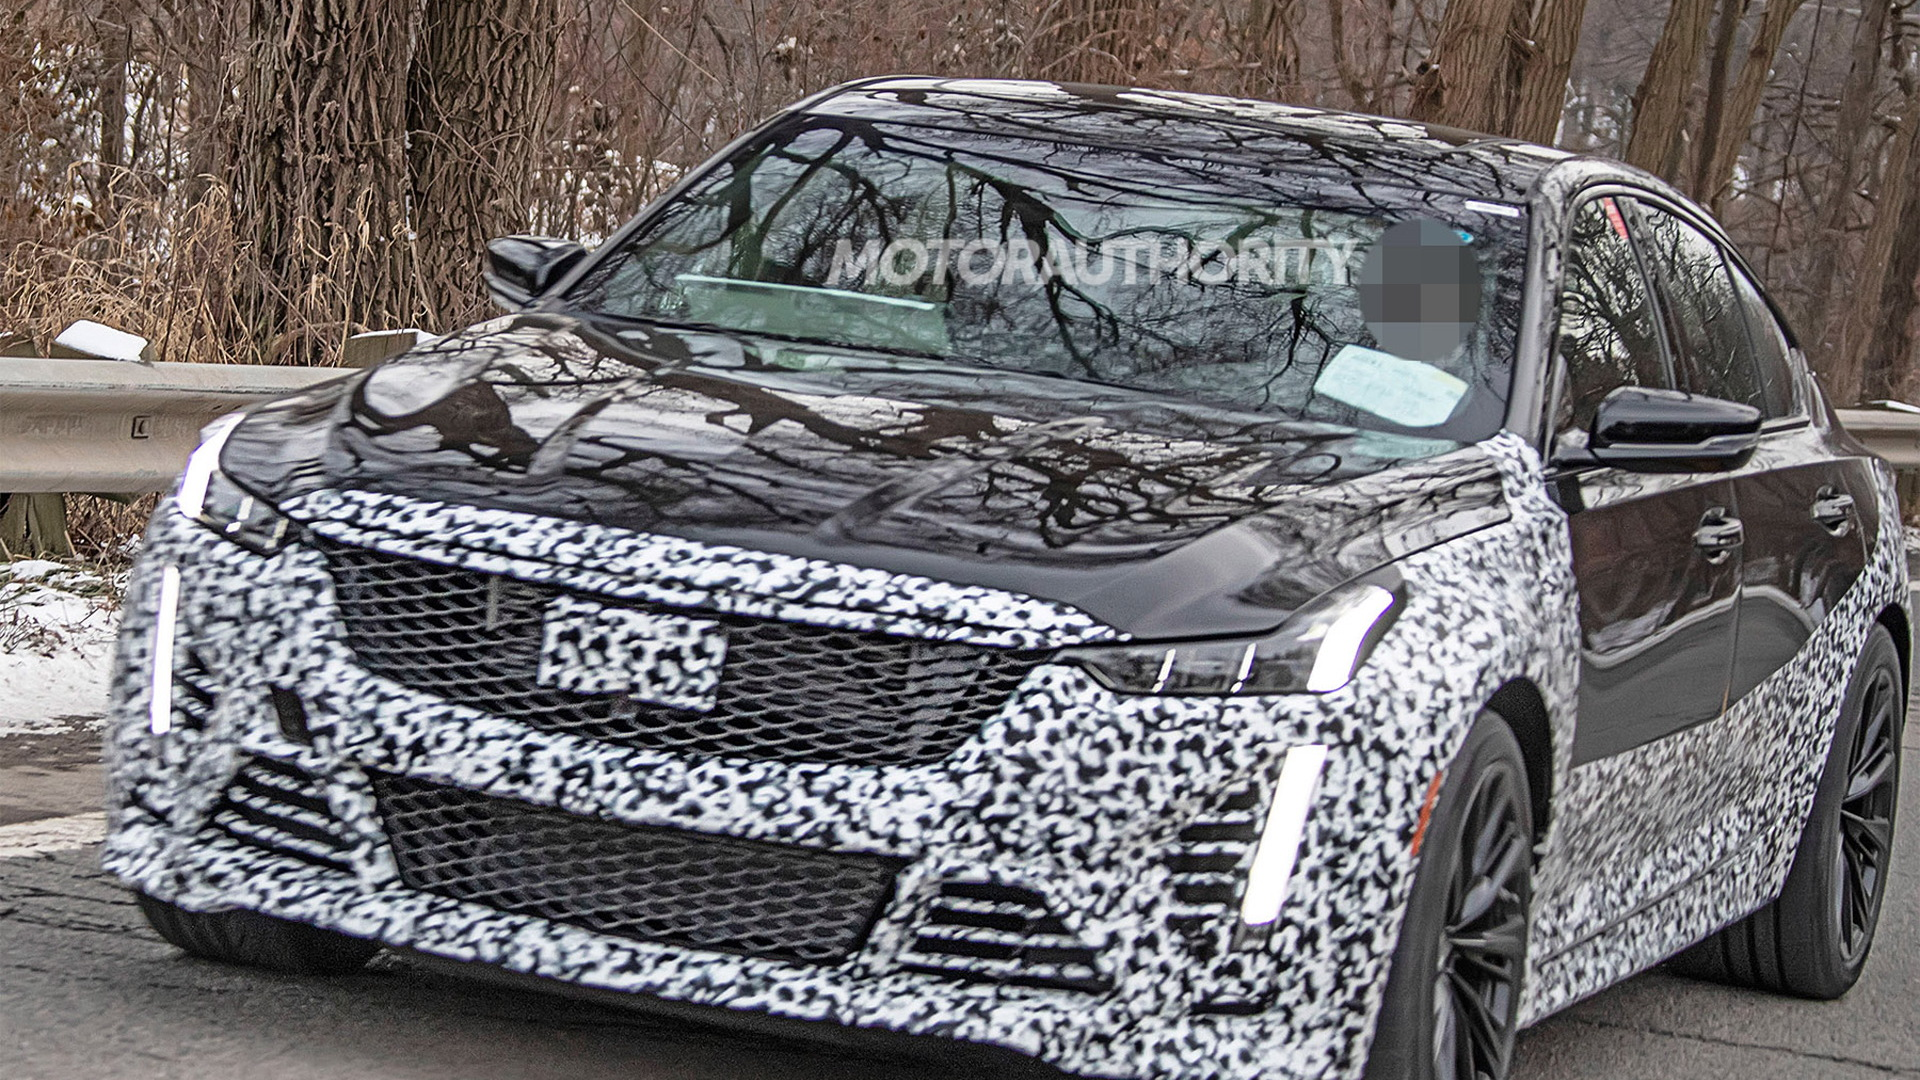 2021 Cadillac CT5-V Blackwing spy shots and video